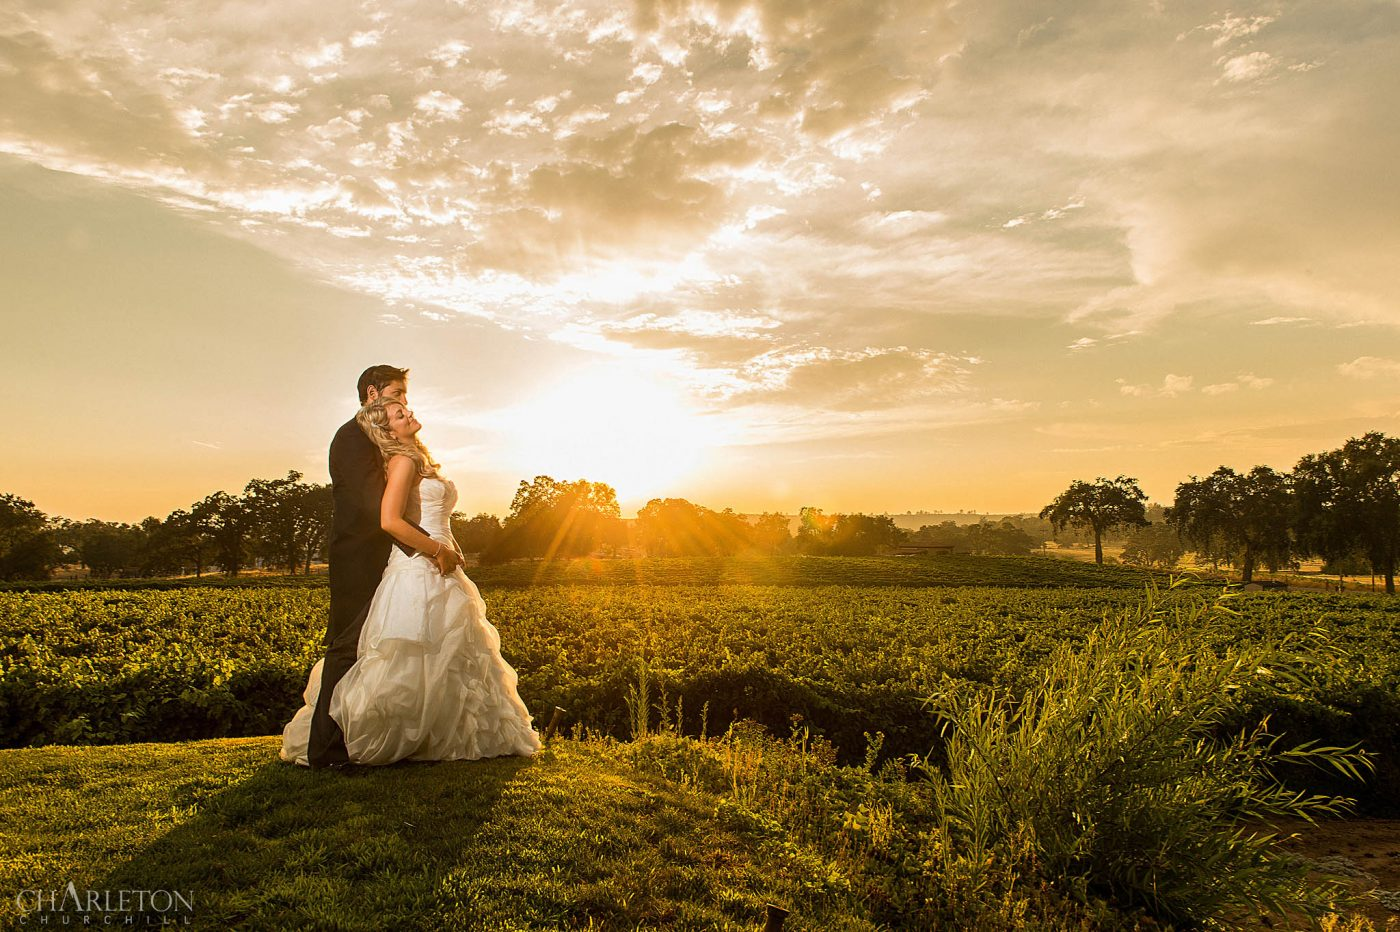 plymouth wedding photographer capturing sunset of wedding couple at bella piazza over vineyard